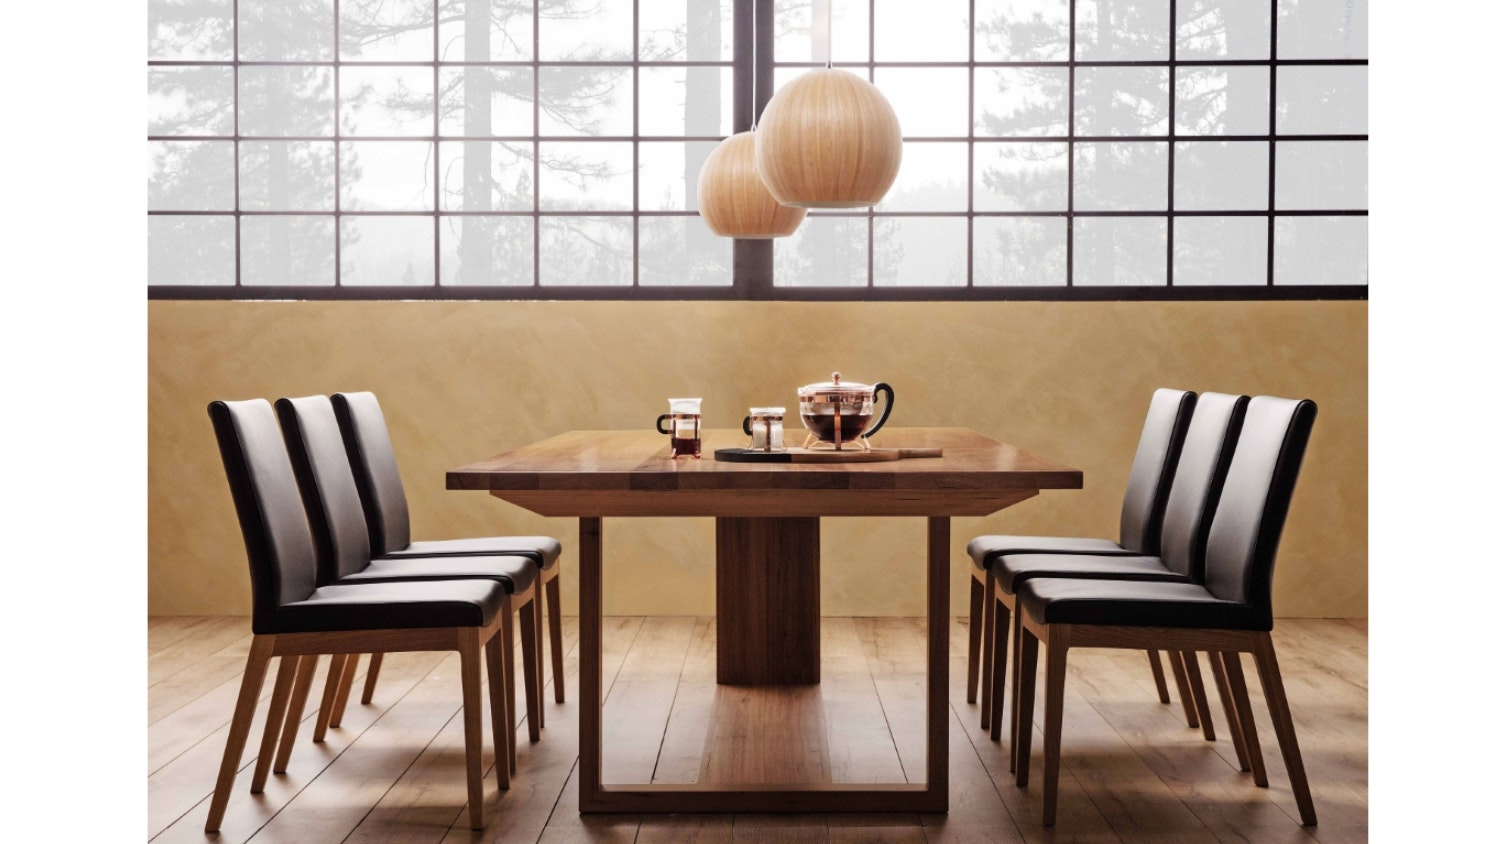 Dorset Rectangular Dining Table